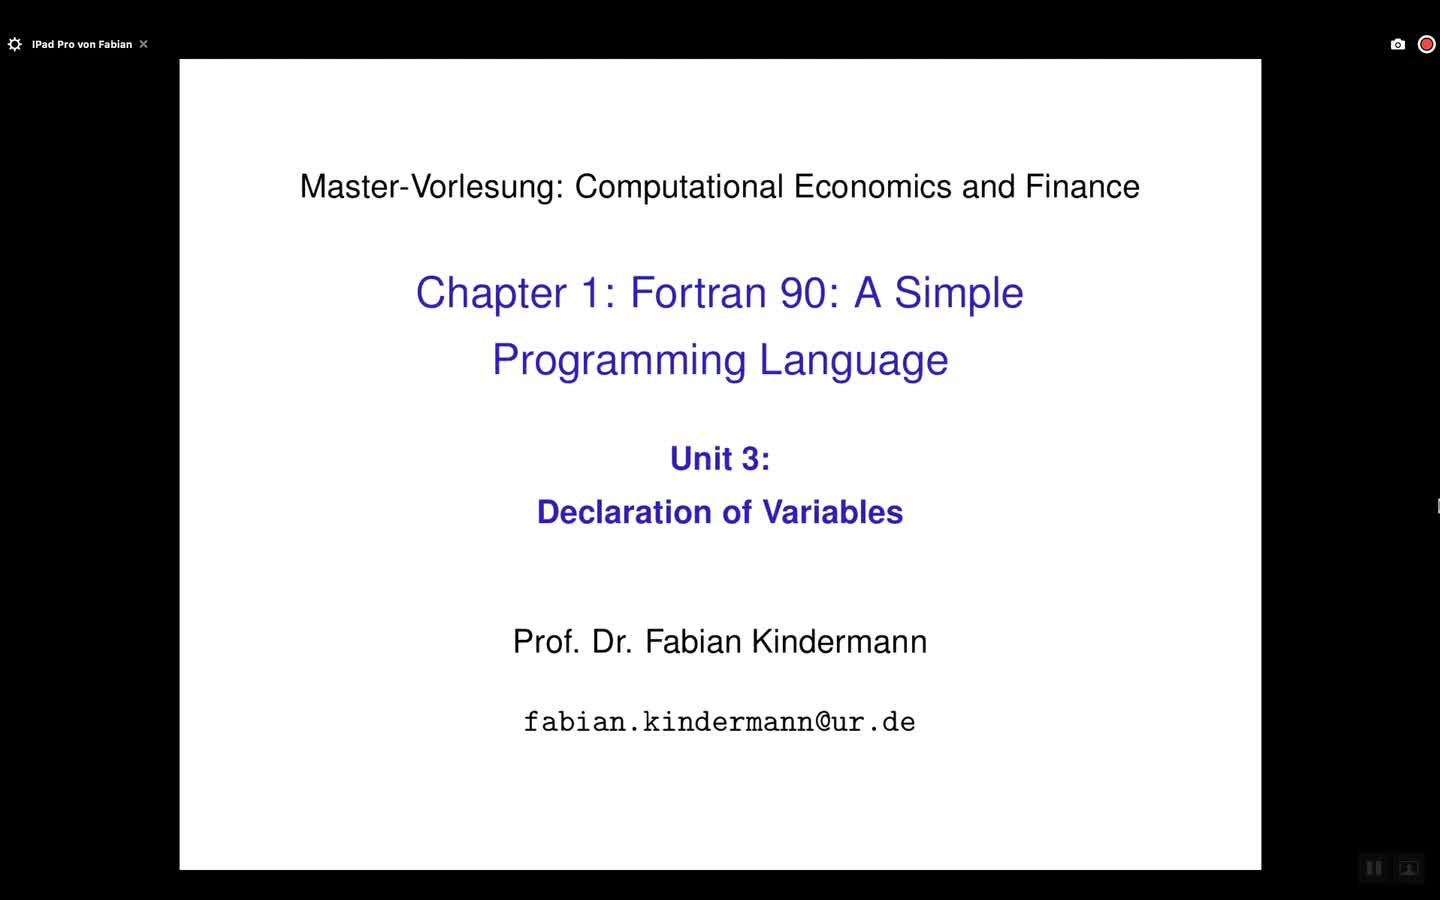 Chapter 1 - Unit 3 - Declaration of Variables